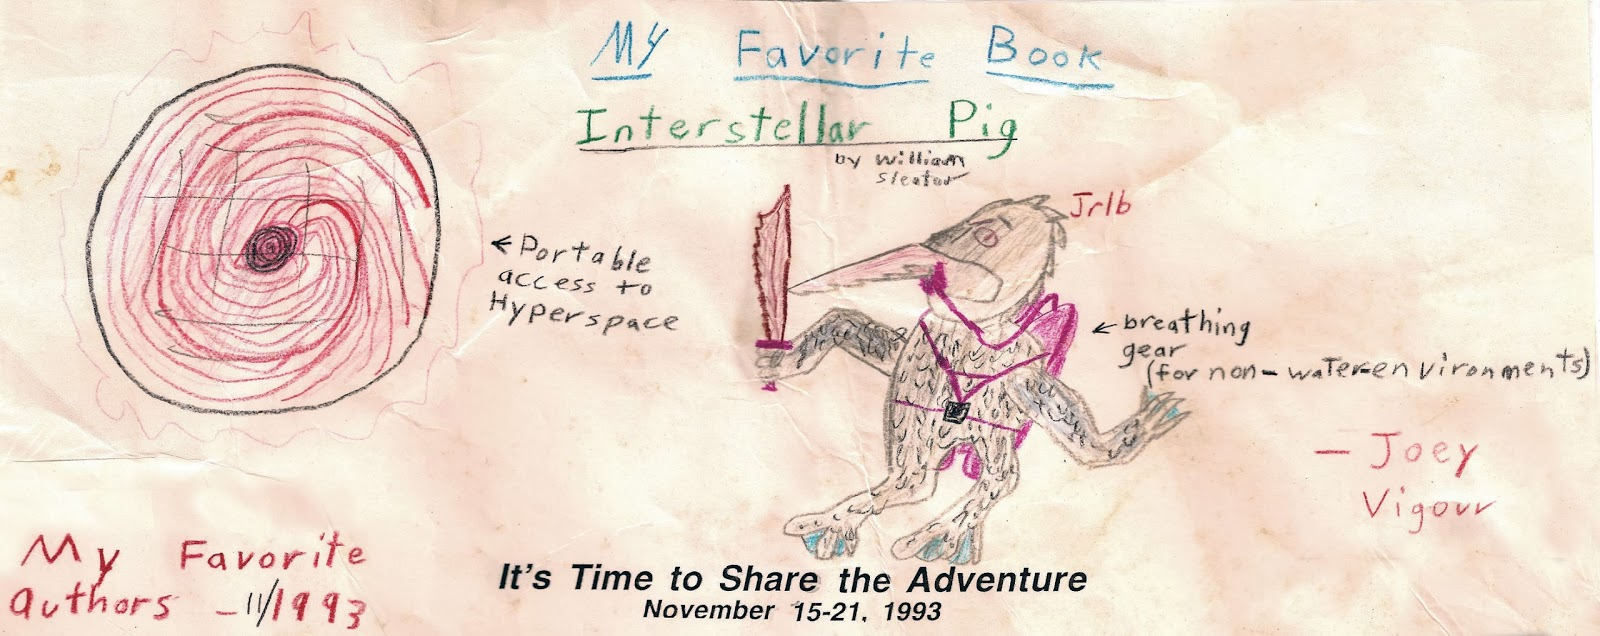 interstellar pig Find all available study guides and summaries for interstellar pig by william sleator if there is a sparknotes, shmoop, or cliff notes guide, we will have it listed.